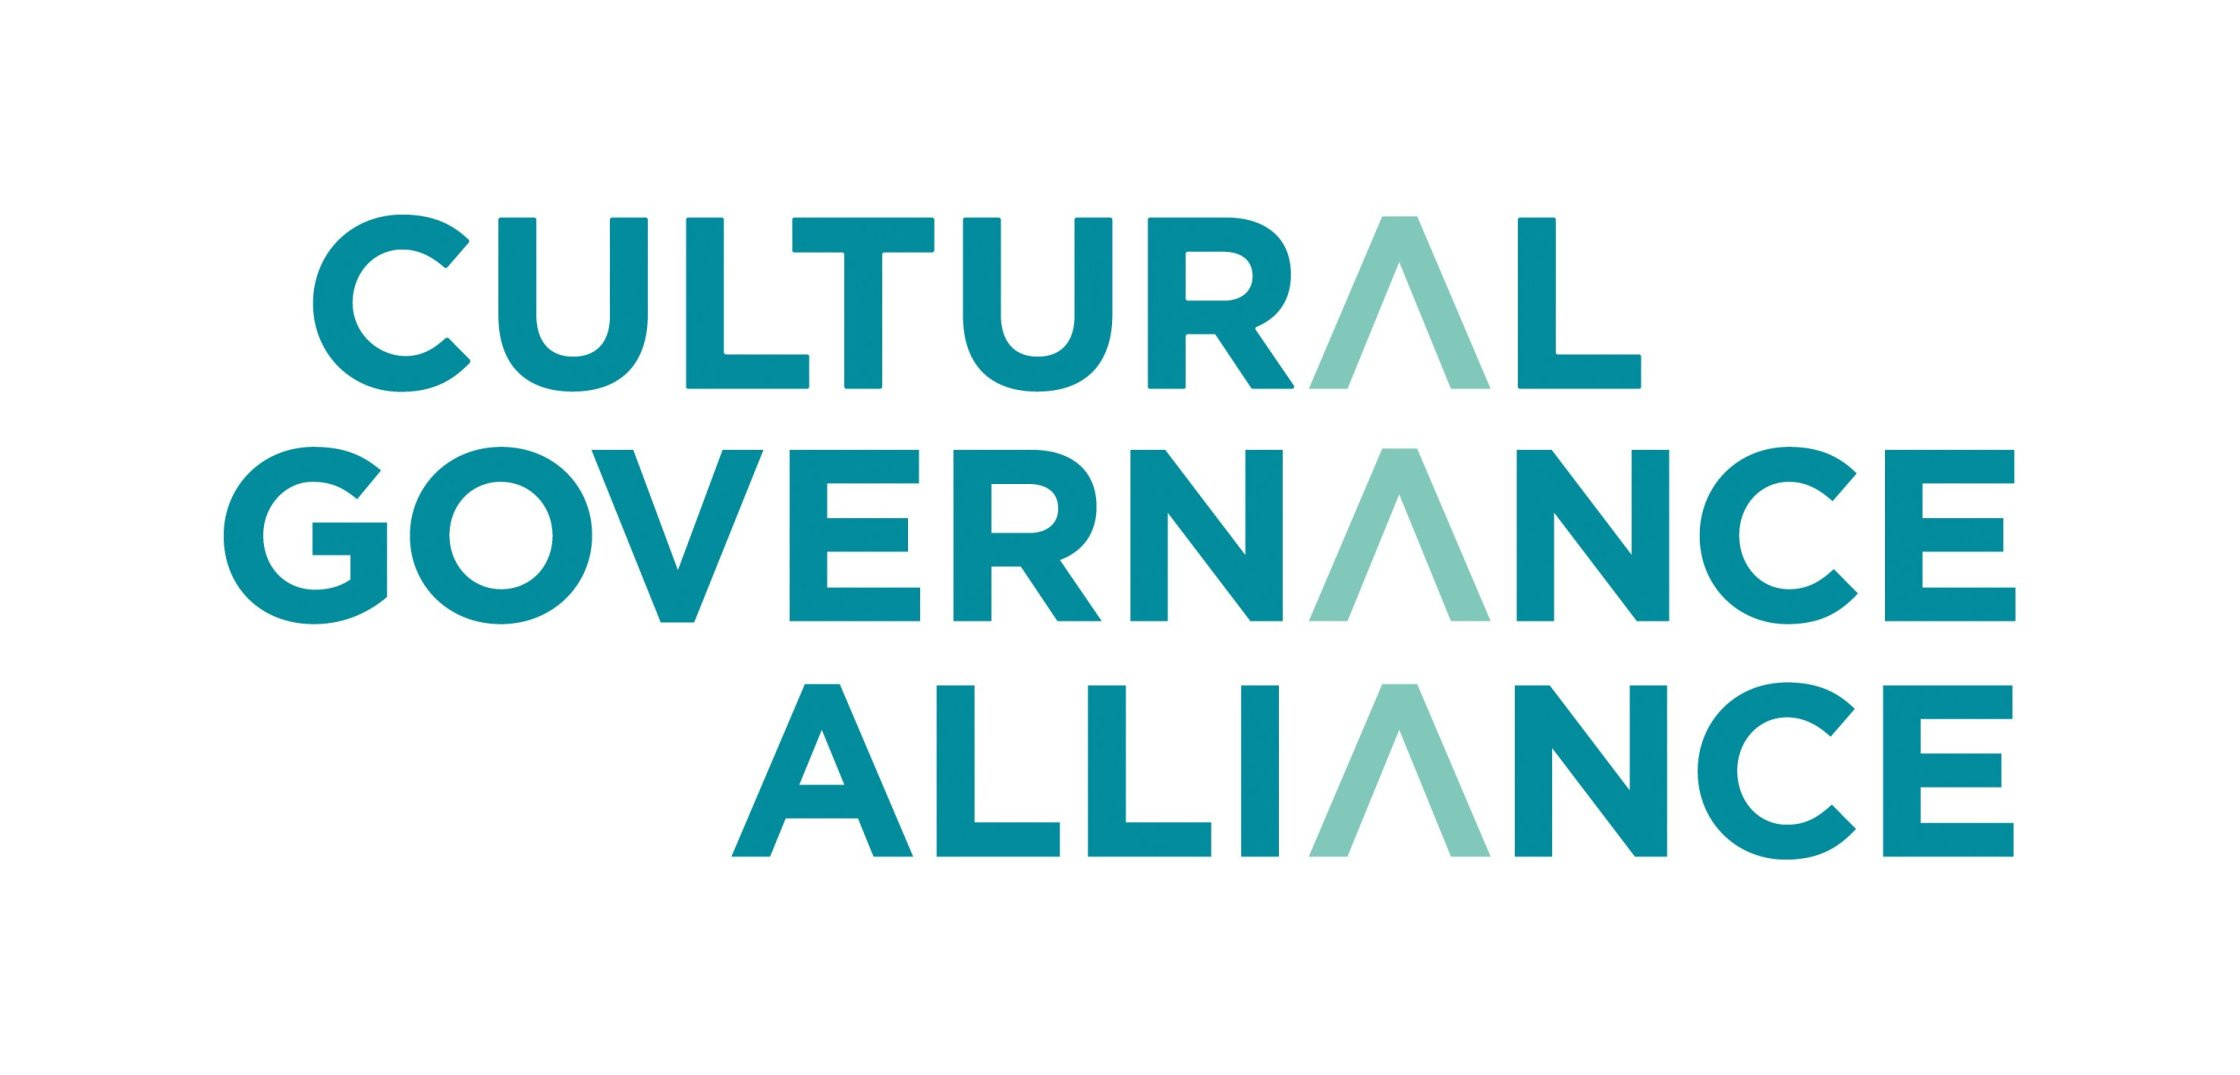 Logo of the Cultural Governance Alliance comprising the words Cultural Governance Alliance